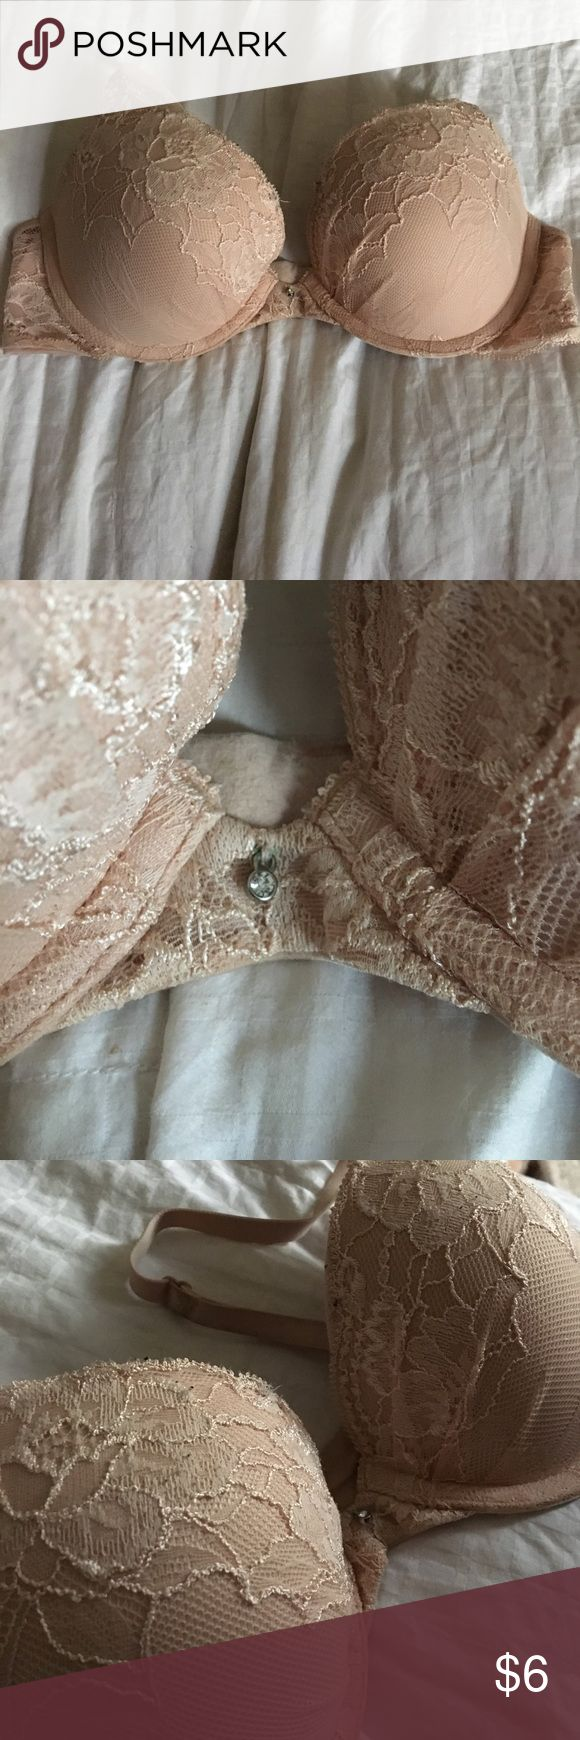 Nude/light pink push up bra Good used condition. Worn a few times but not the right size for myself, some wear from the washing machine:  price is final, unless bundled with an other item! (Not VS just used for advertising) Victoria's Secret Intimates & Sleepwear Bras